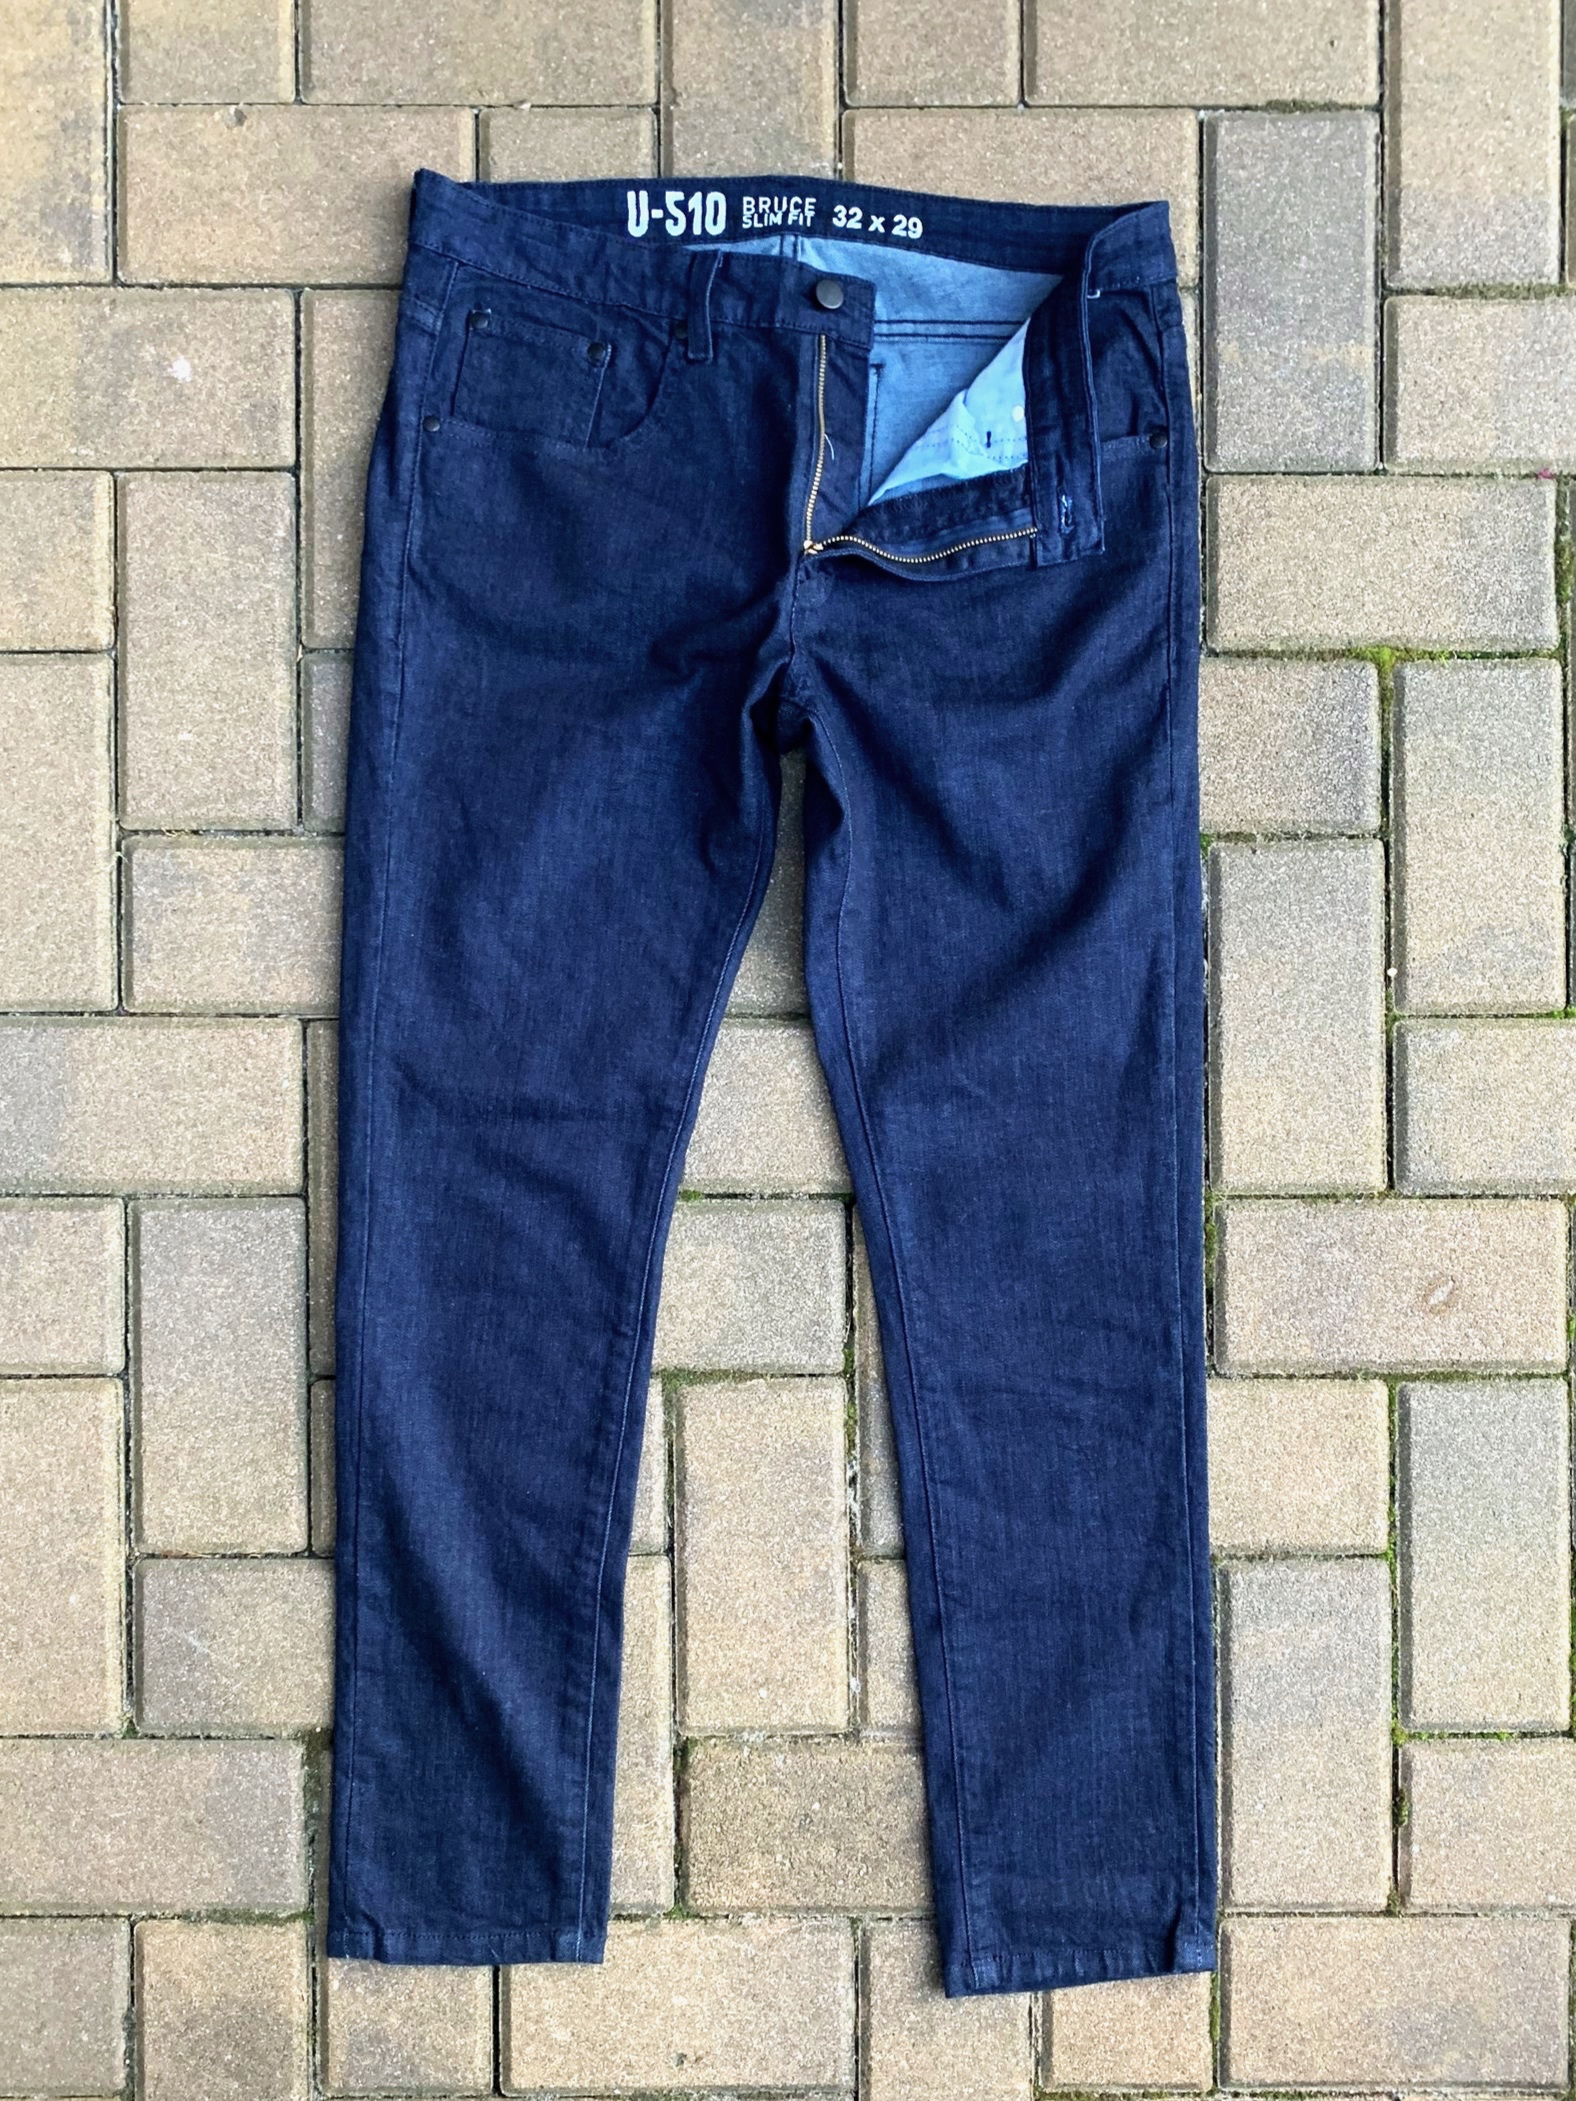 The richness of the indigo color on this jean is vivid and vibrant